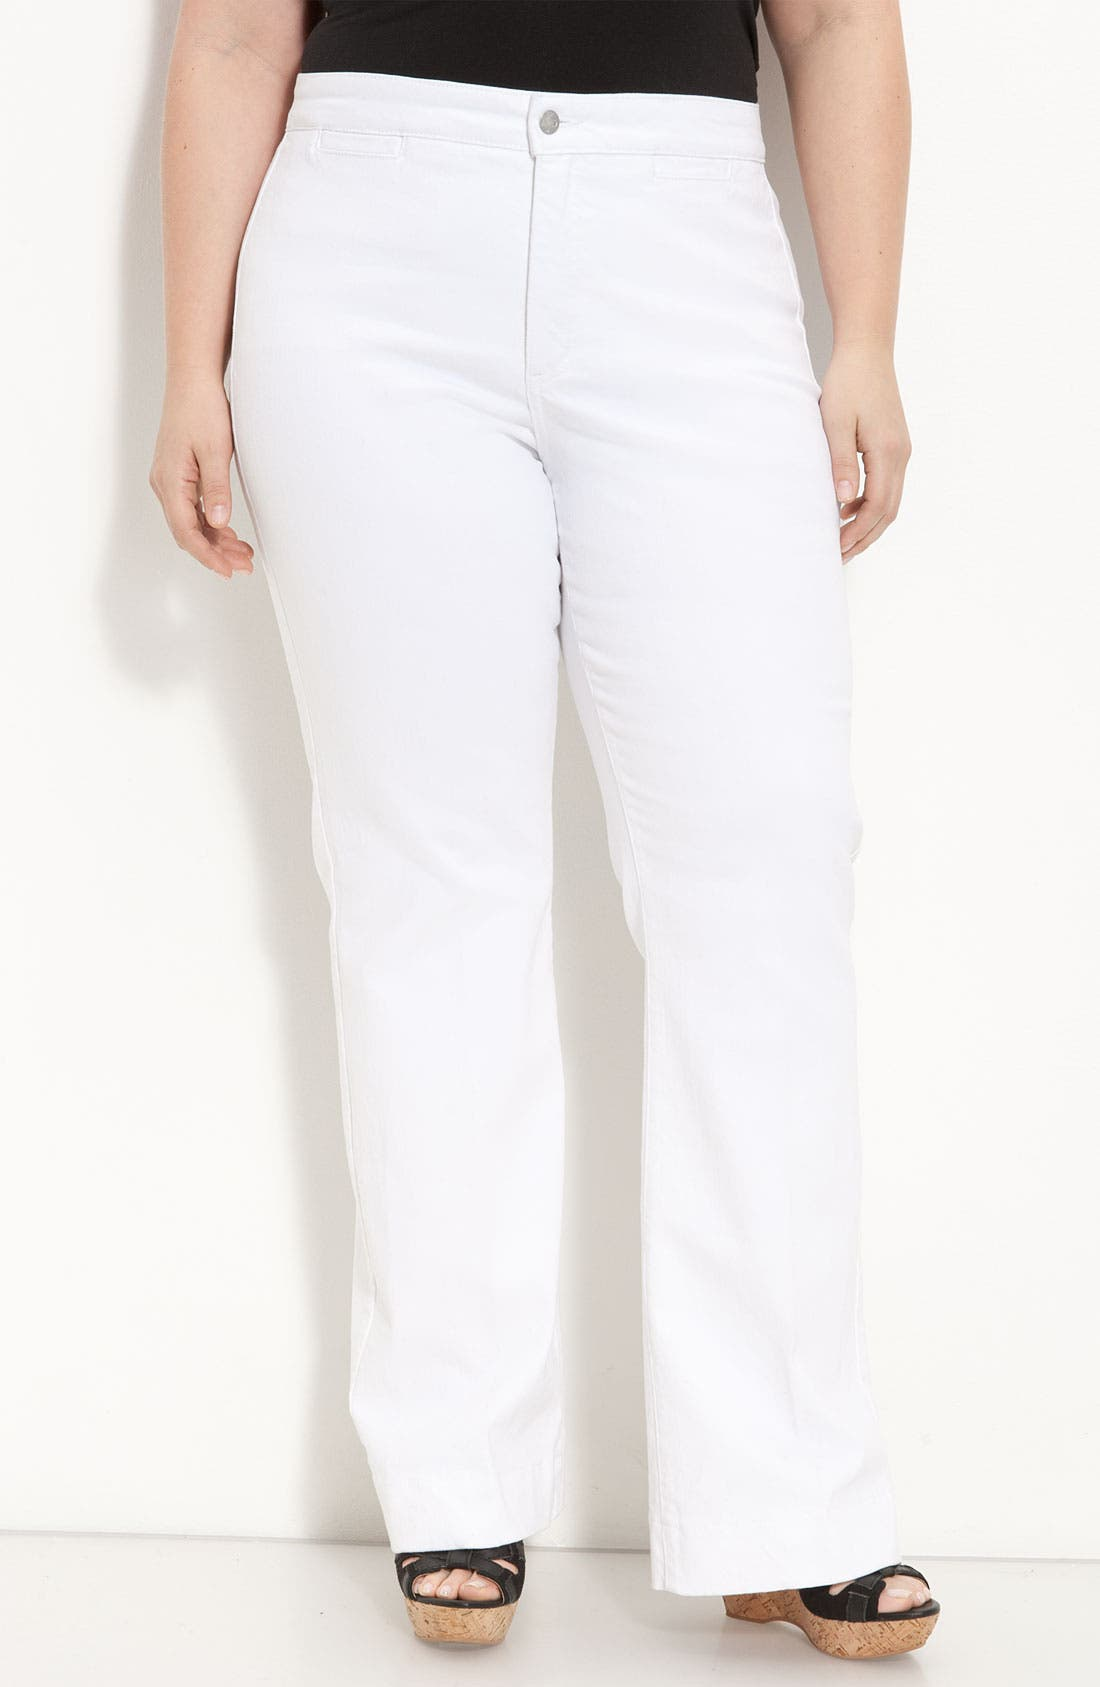 Alternate Image 1 Selected - NYDJ 'Michelle' Trousers (Plus)